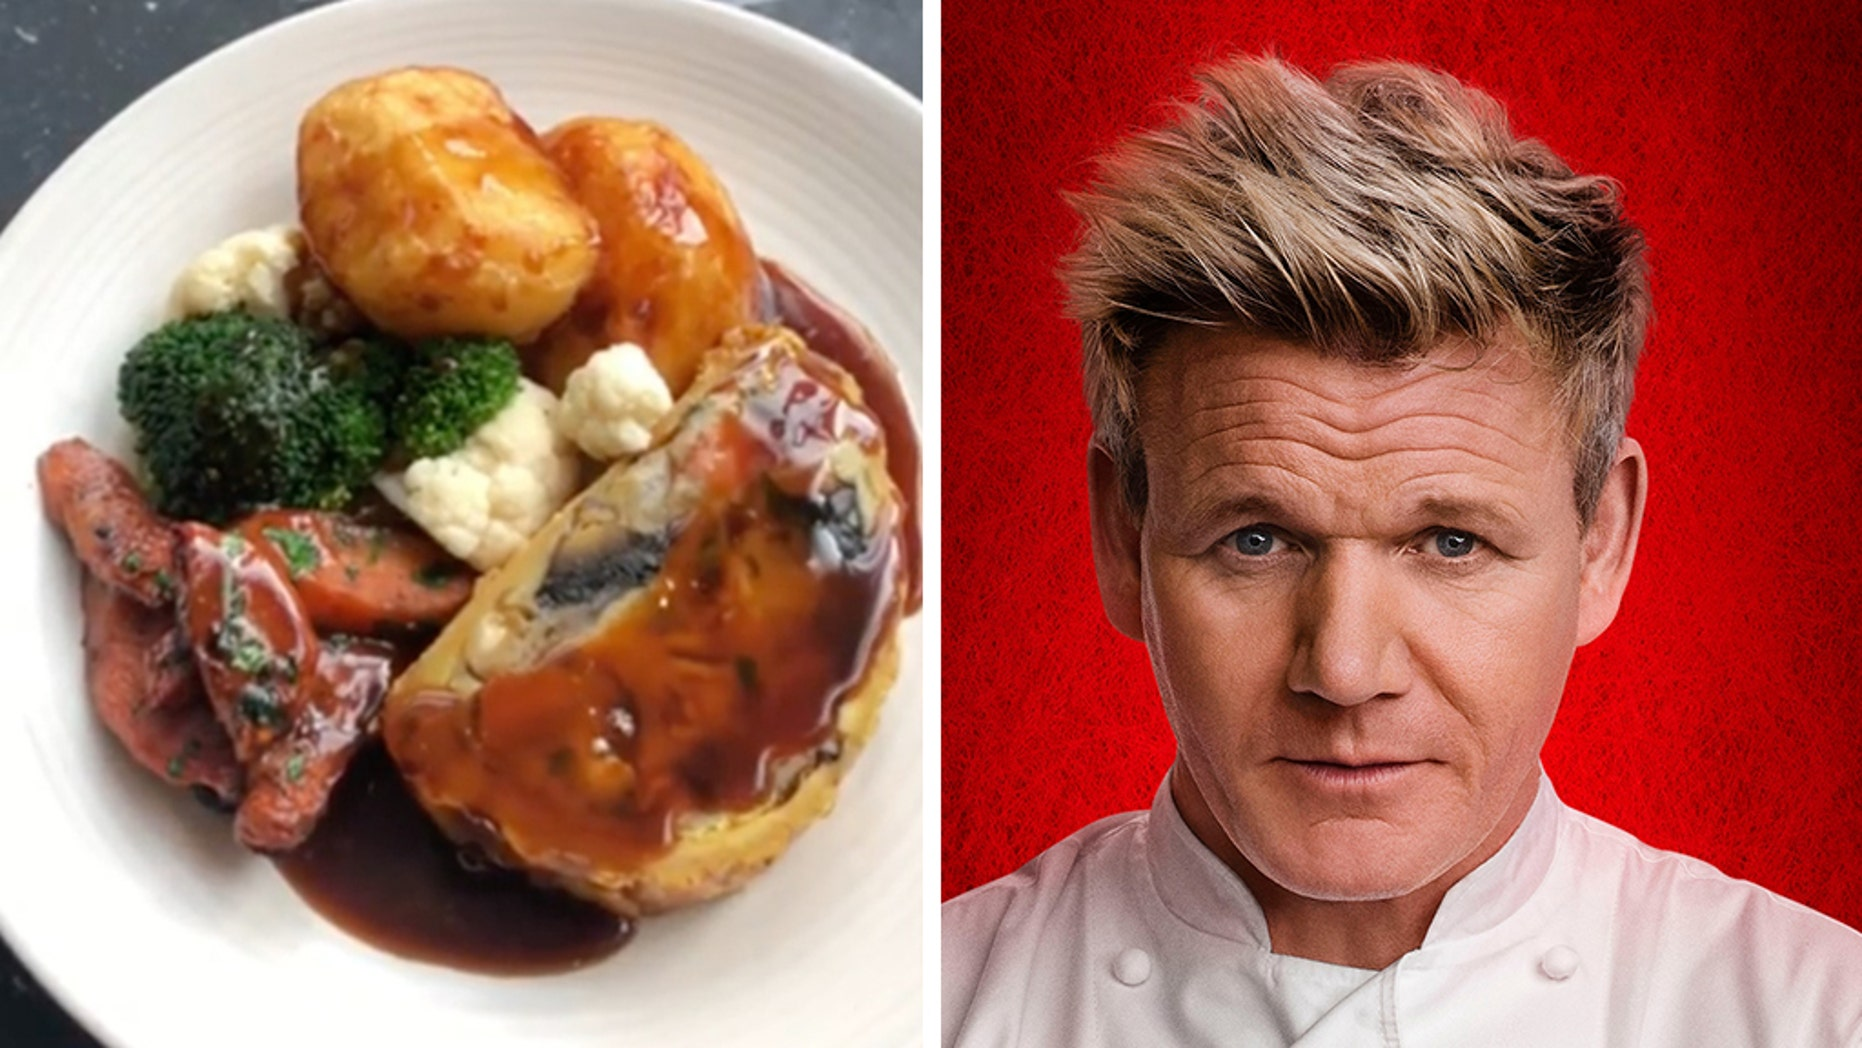 Gordon Ramsay has added a Vegan Sunday Roast to his London restaurant's menu — and it's getting mixed reviews.